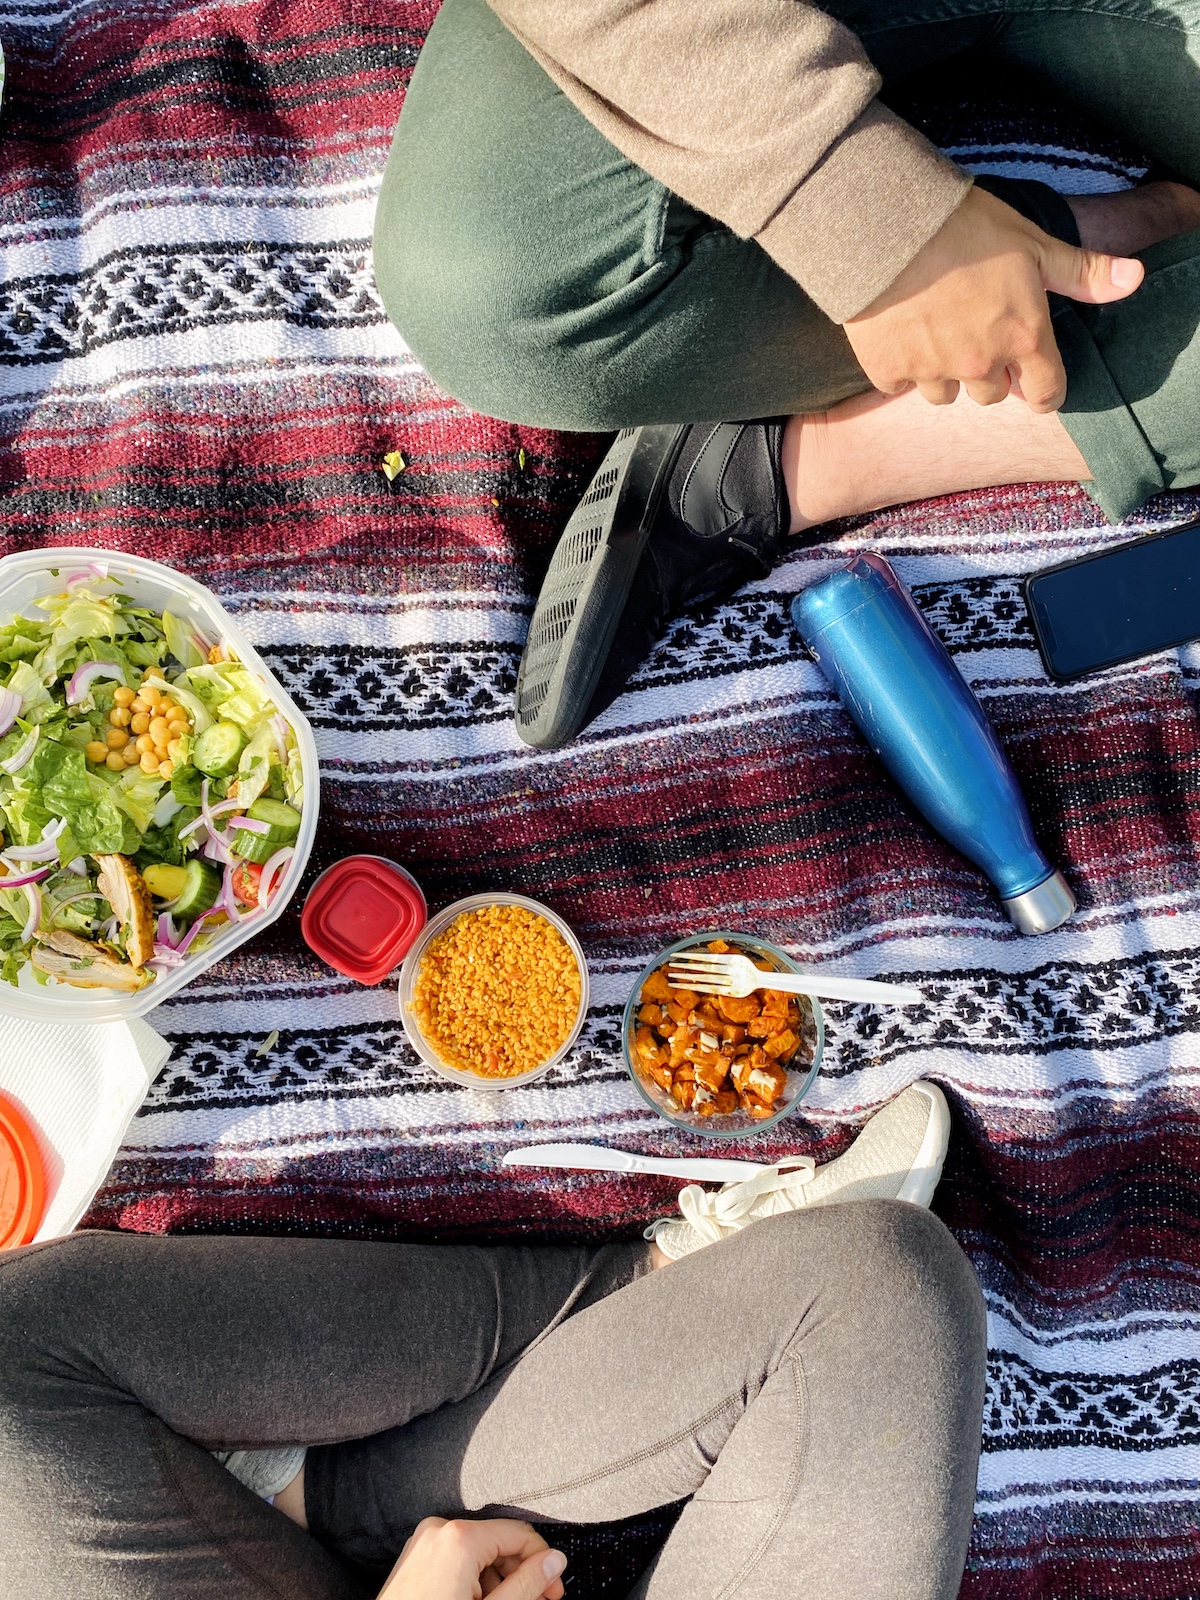 A meal laid out on a picnic blanket